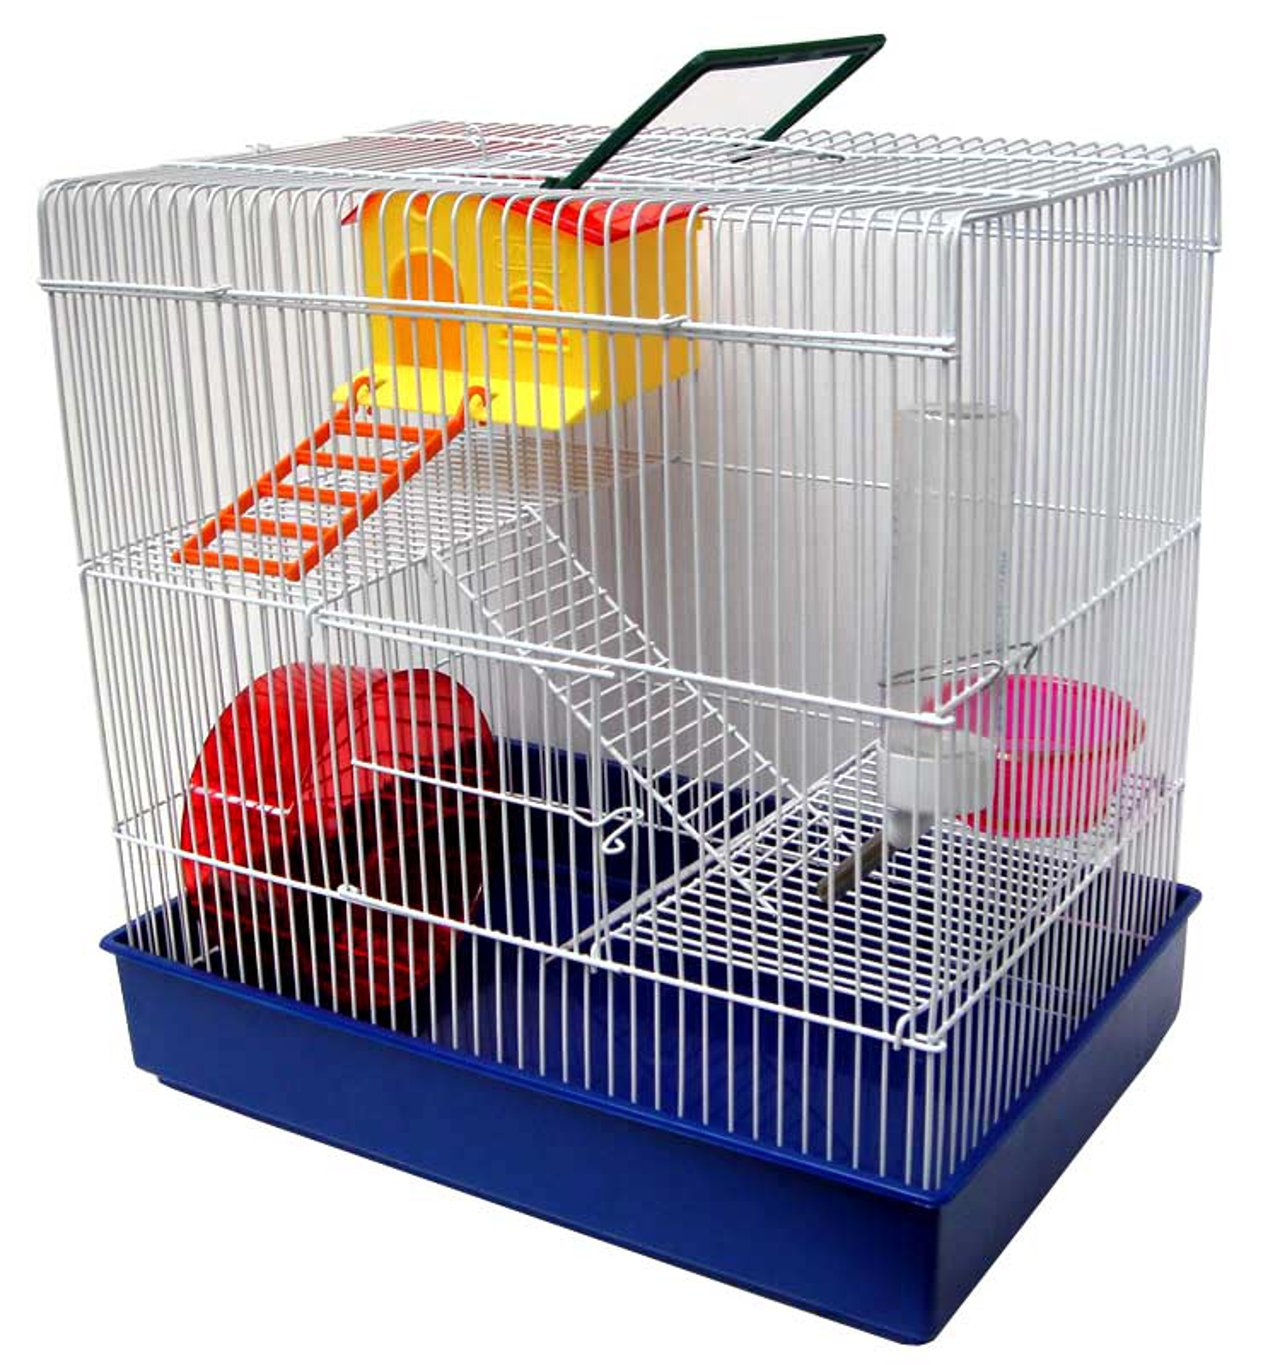 YML H820 3-Level Hamster Cage, Blue